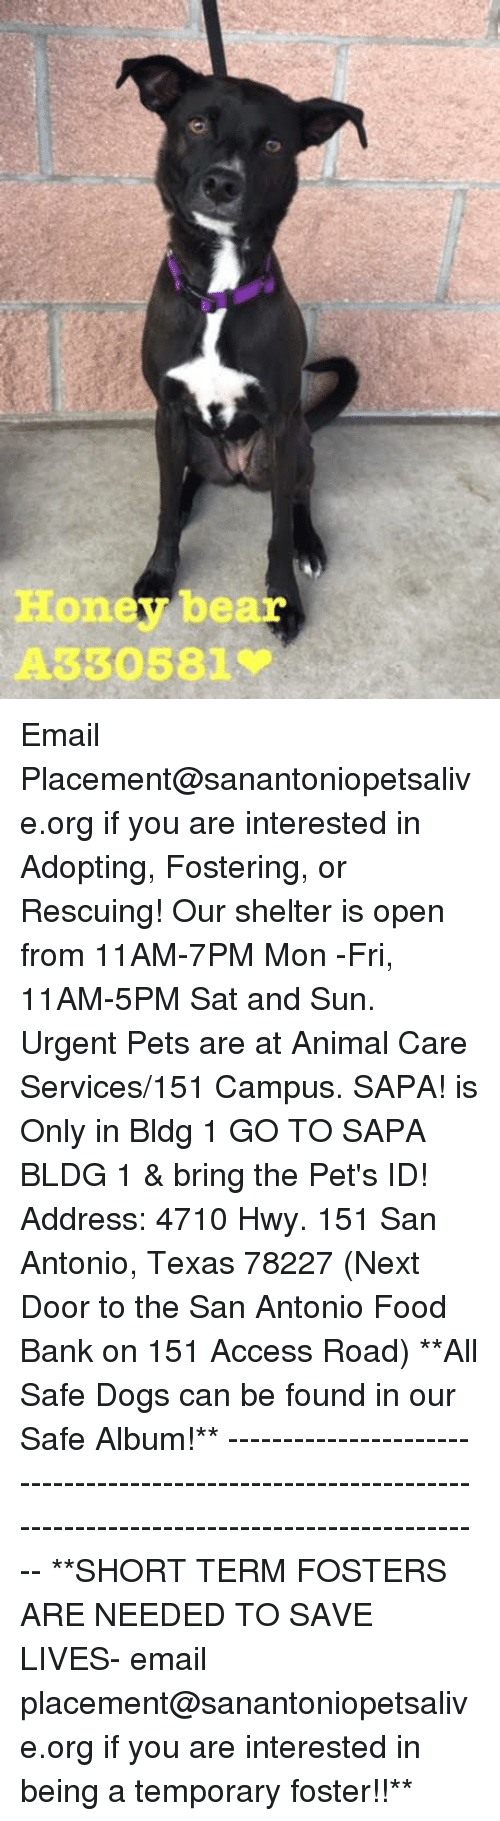 Dogs, Food, and Memes: Honey bear  A330581 Email Placement@sanantoniopetsalive.org if you are interested in Adopting, Fostering, or Rescuing!  Our shelter is open from 11AM-7PM Mon -Fri, 11AM-5PM Sat and Sun.  Urgent Pets are at Animal Care Services/151 Campus. SAPA! is Only in Bldg 1 GO TO SAPA BLDG 1 & bring the Pet's ID! Address: 4710 Hwy. 151 San Antonio, Texas 78227 (Next Door to the San Antonio Food Bank on 151 Access Road)  **All Safe Dogs can be found in our Safe Album!** ---------------------------------------------------------------------------------------------------------- **SHORT TERM FOSTERS ARE NEEDED TO SAVE LIVES- email placement@sanantoniopetsalive.org if you are interested in being a temporary foster!!**